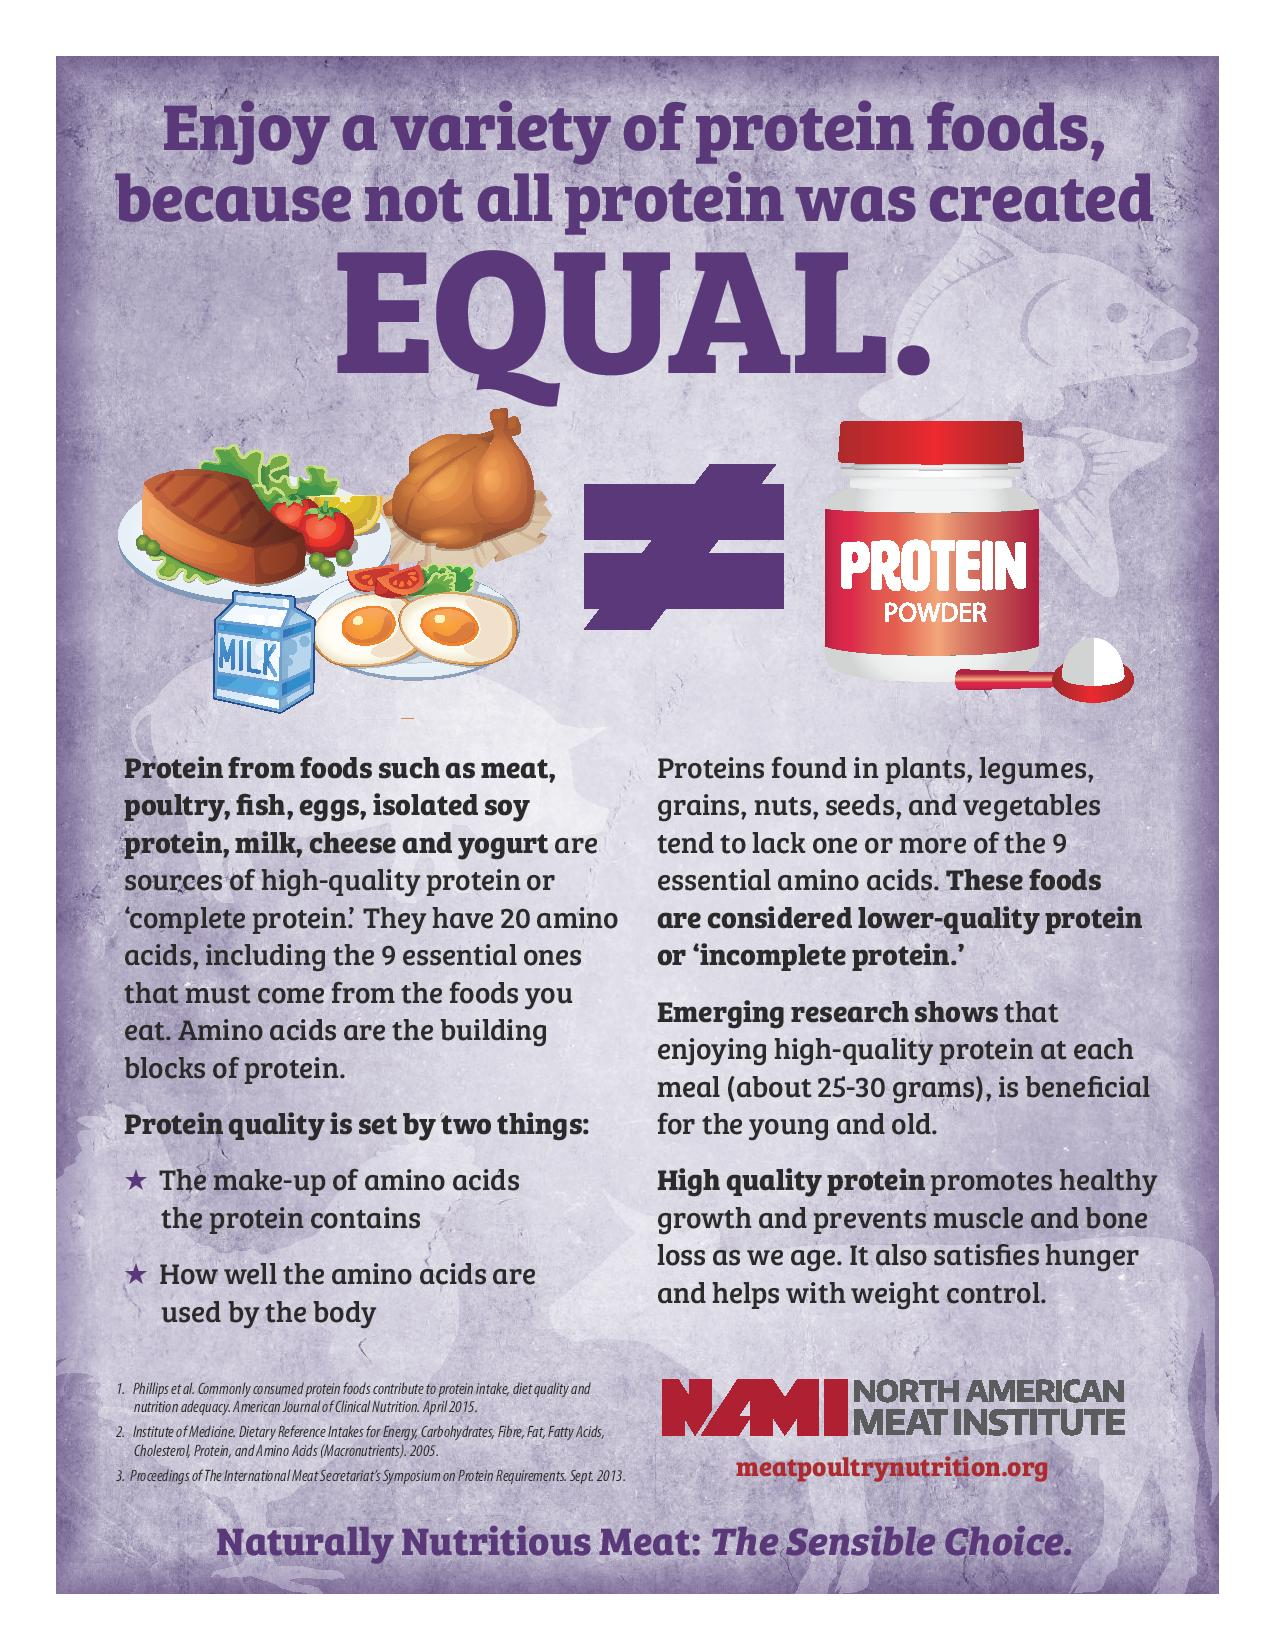 Enjoy a variety of protein foods, because not all protein was created equal